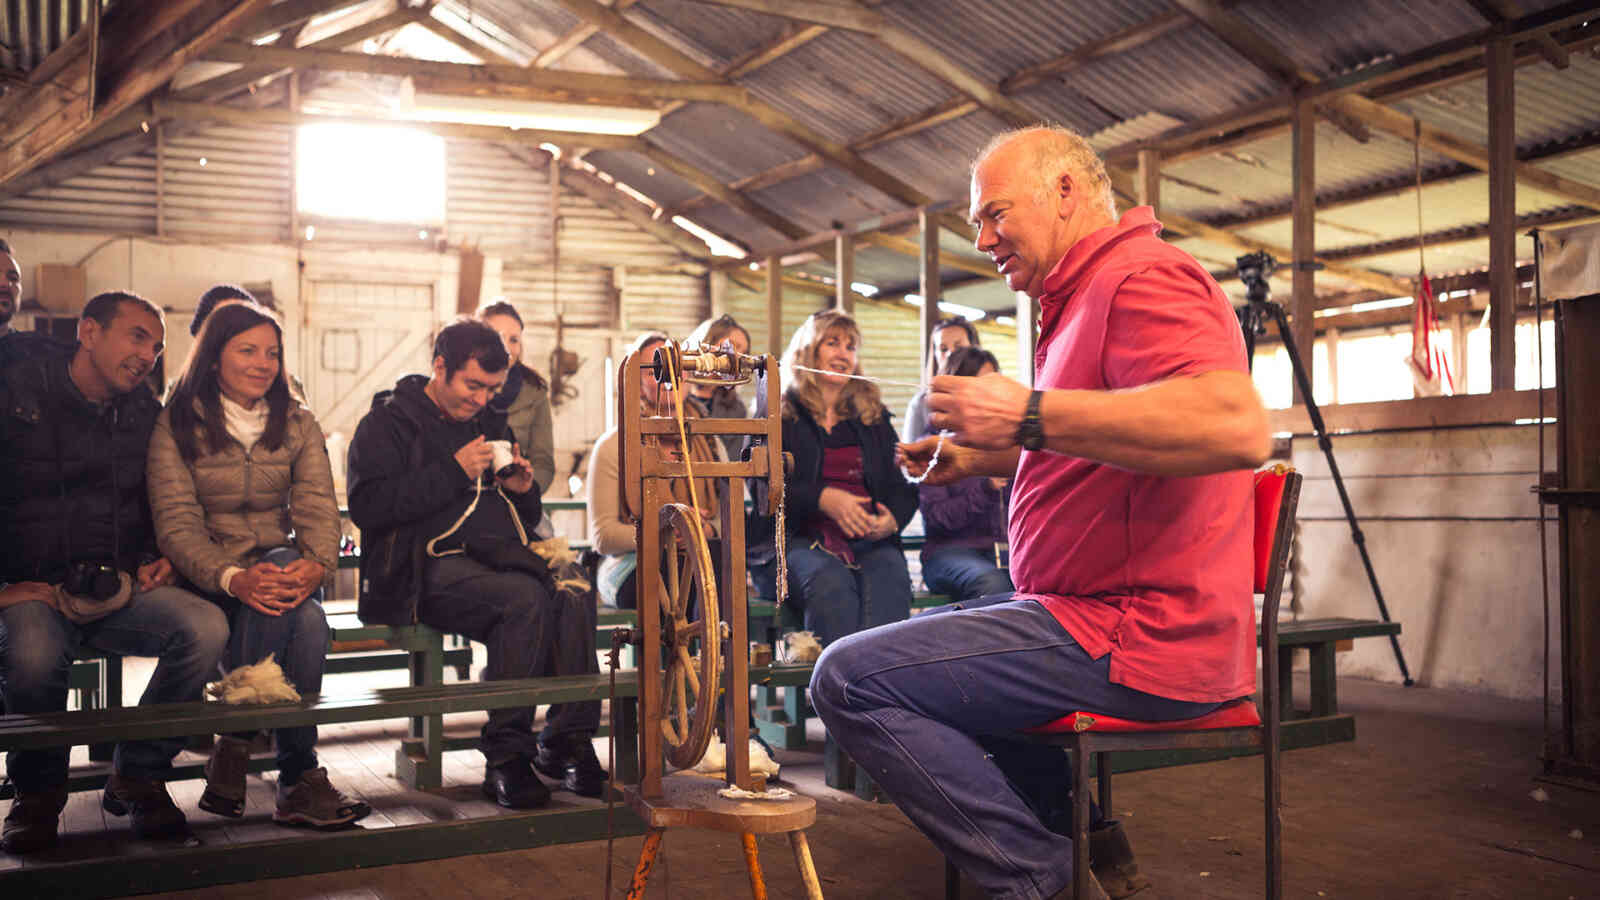 Spinning Wool At Robs Shearing Shed 1920X1200Px